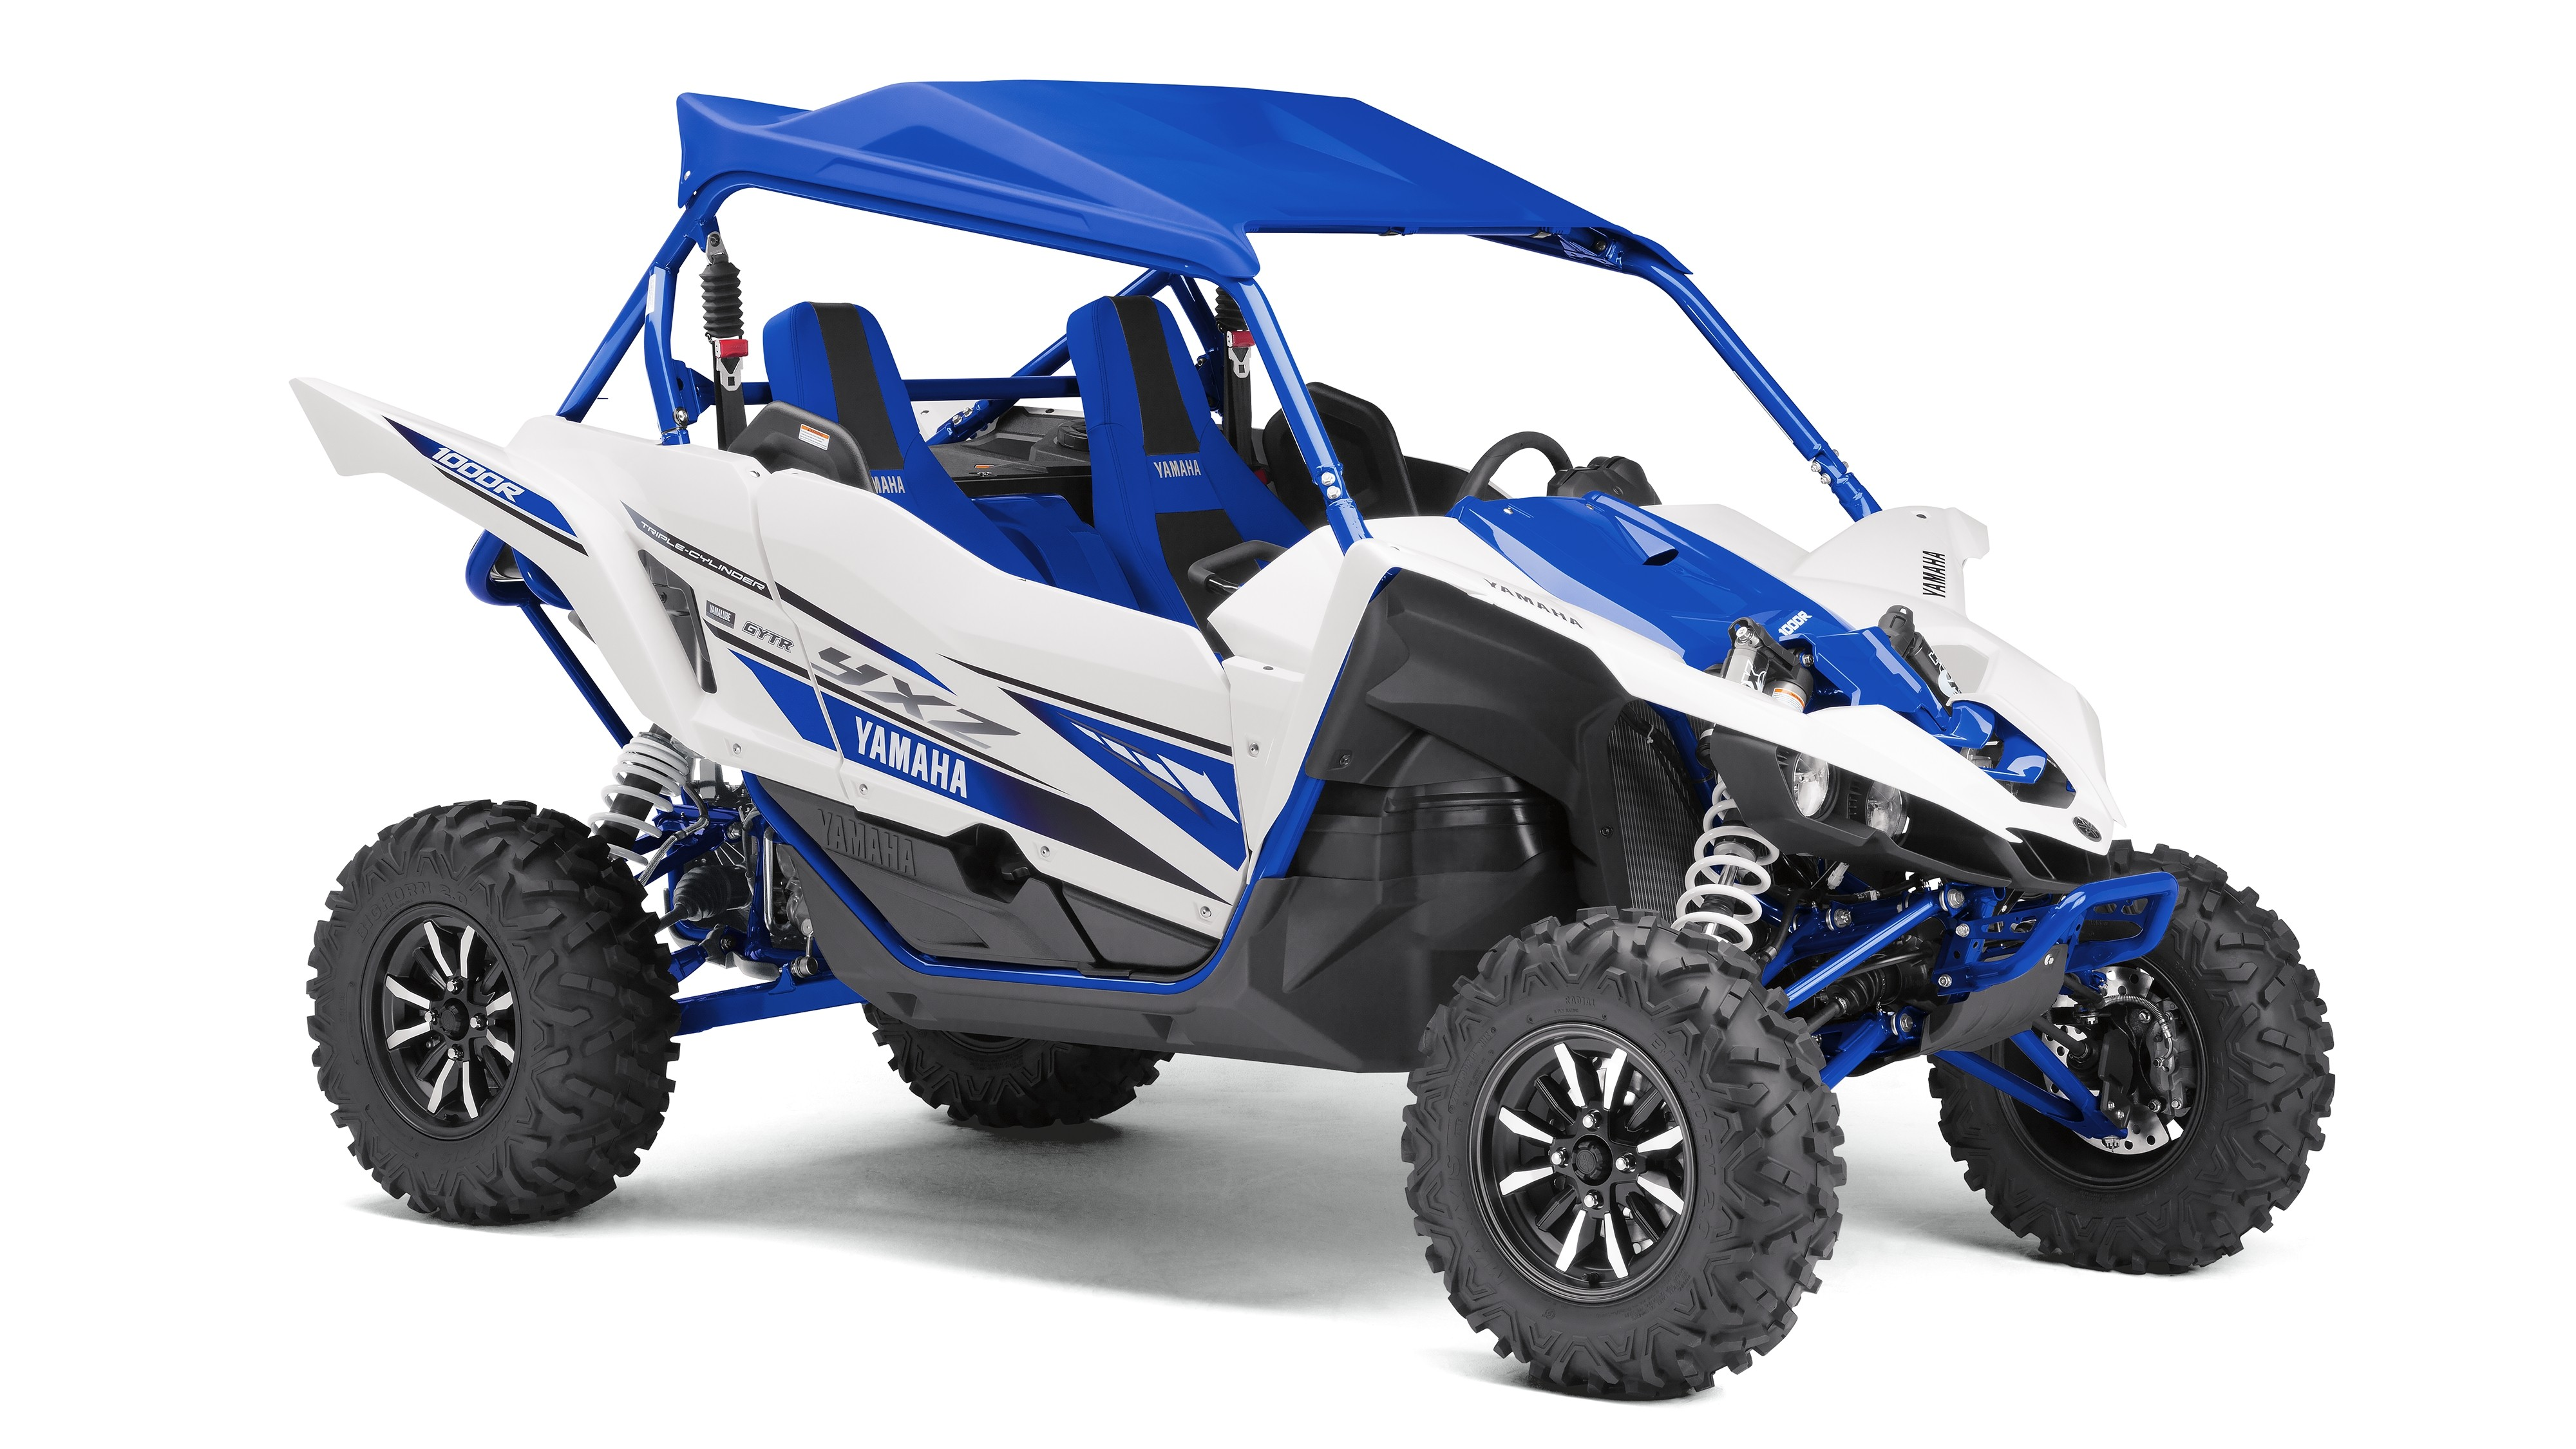 2017 yamaha yxz1000r ss brings f1 technology to the sxs for 2017 yamaha yxz1000r ss price